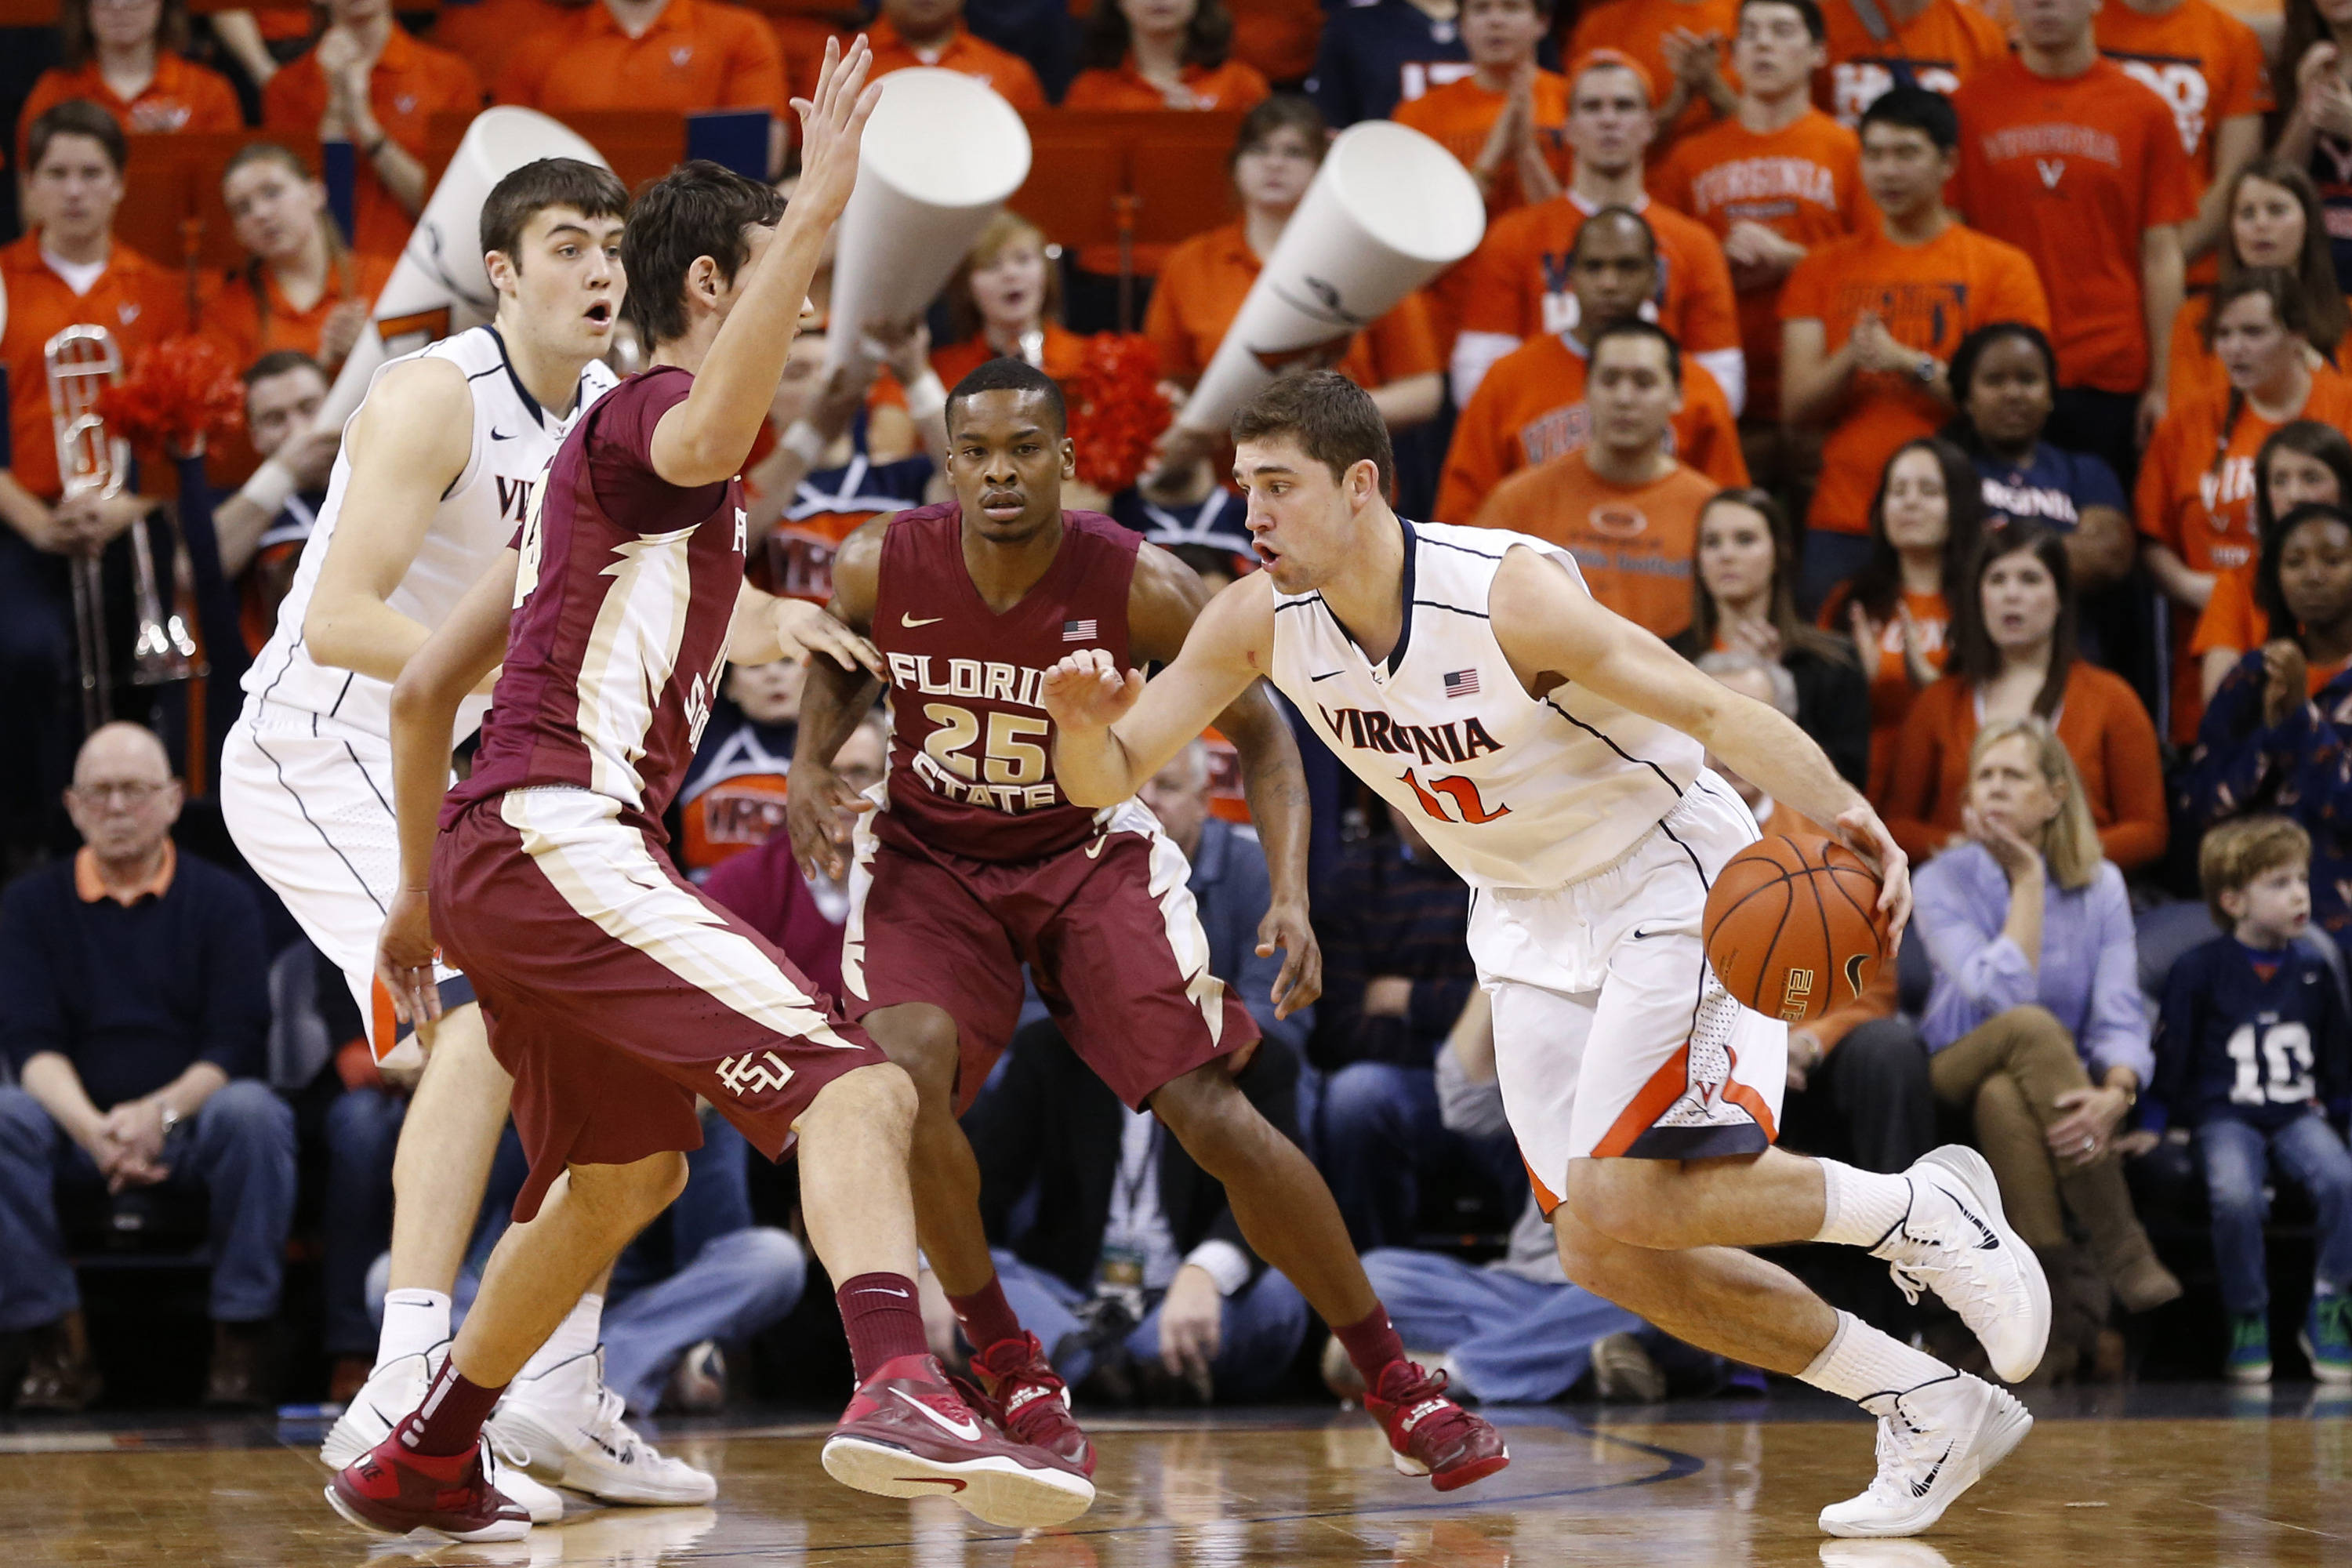 Jan 18, 2014; Charlottesville, VA, USA; Virginia Cavaliers guard Joe Harris (12) dribbles the ball around Florida State Seminoles center Boris Bojanovsky (15) and Seminoles guard Aaron Thomas (25) in the first half at John Paul Jones Arena. Mandatory Credit: Geoff Burke-USA TODAY Sports